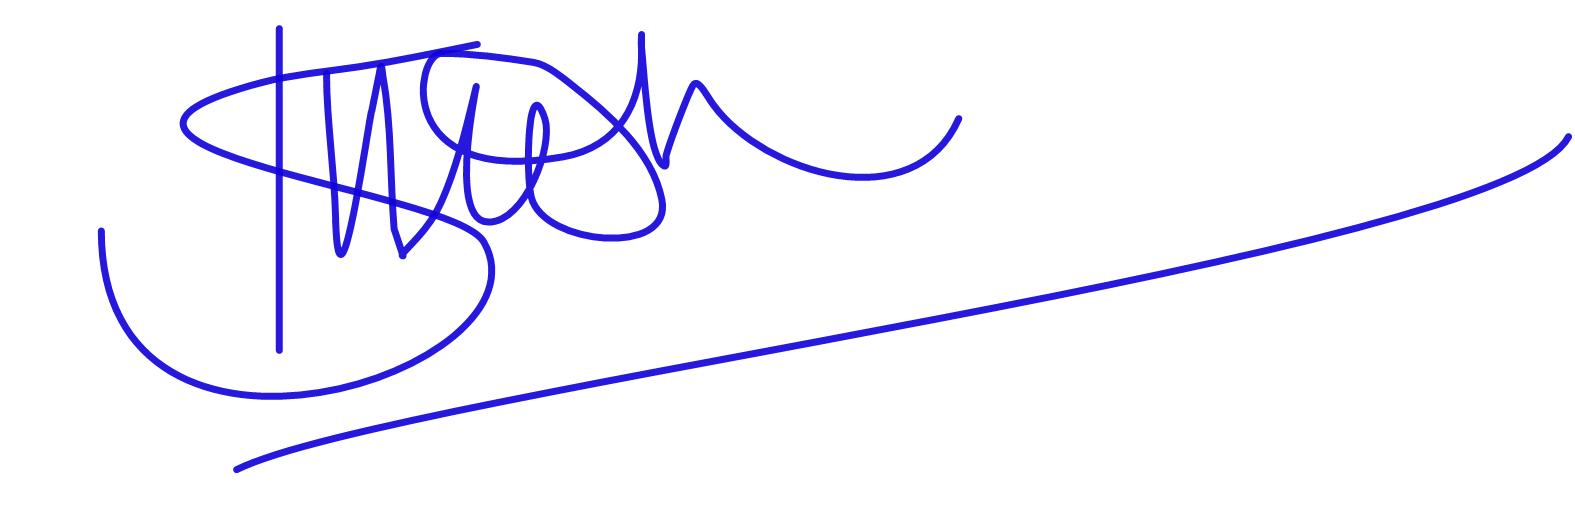 Simon Christian name signature jpeg